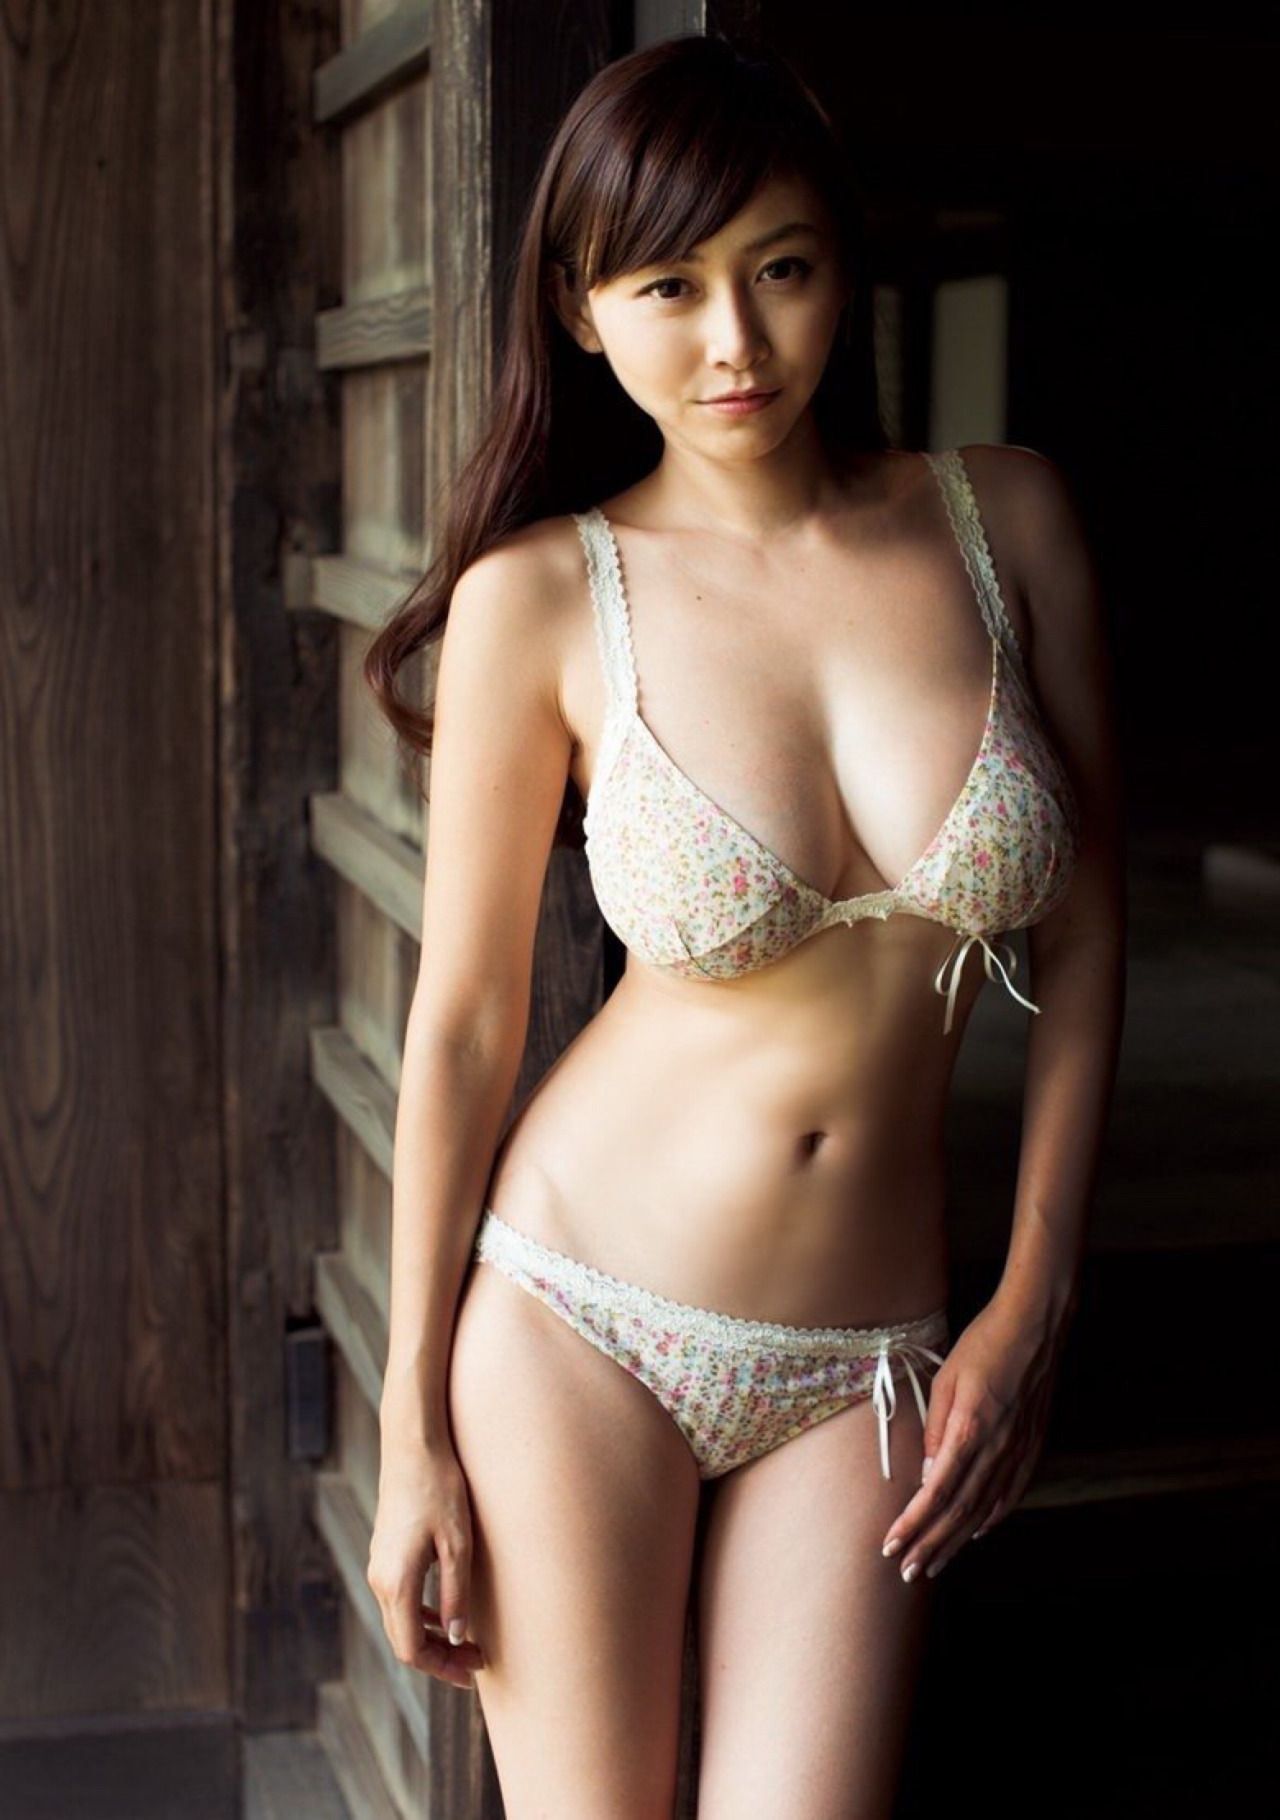 Anri Sugihara (b. 1982) nude photos 2019